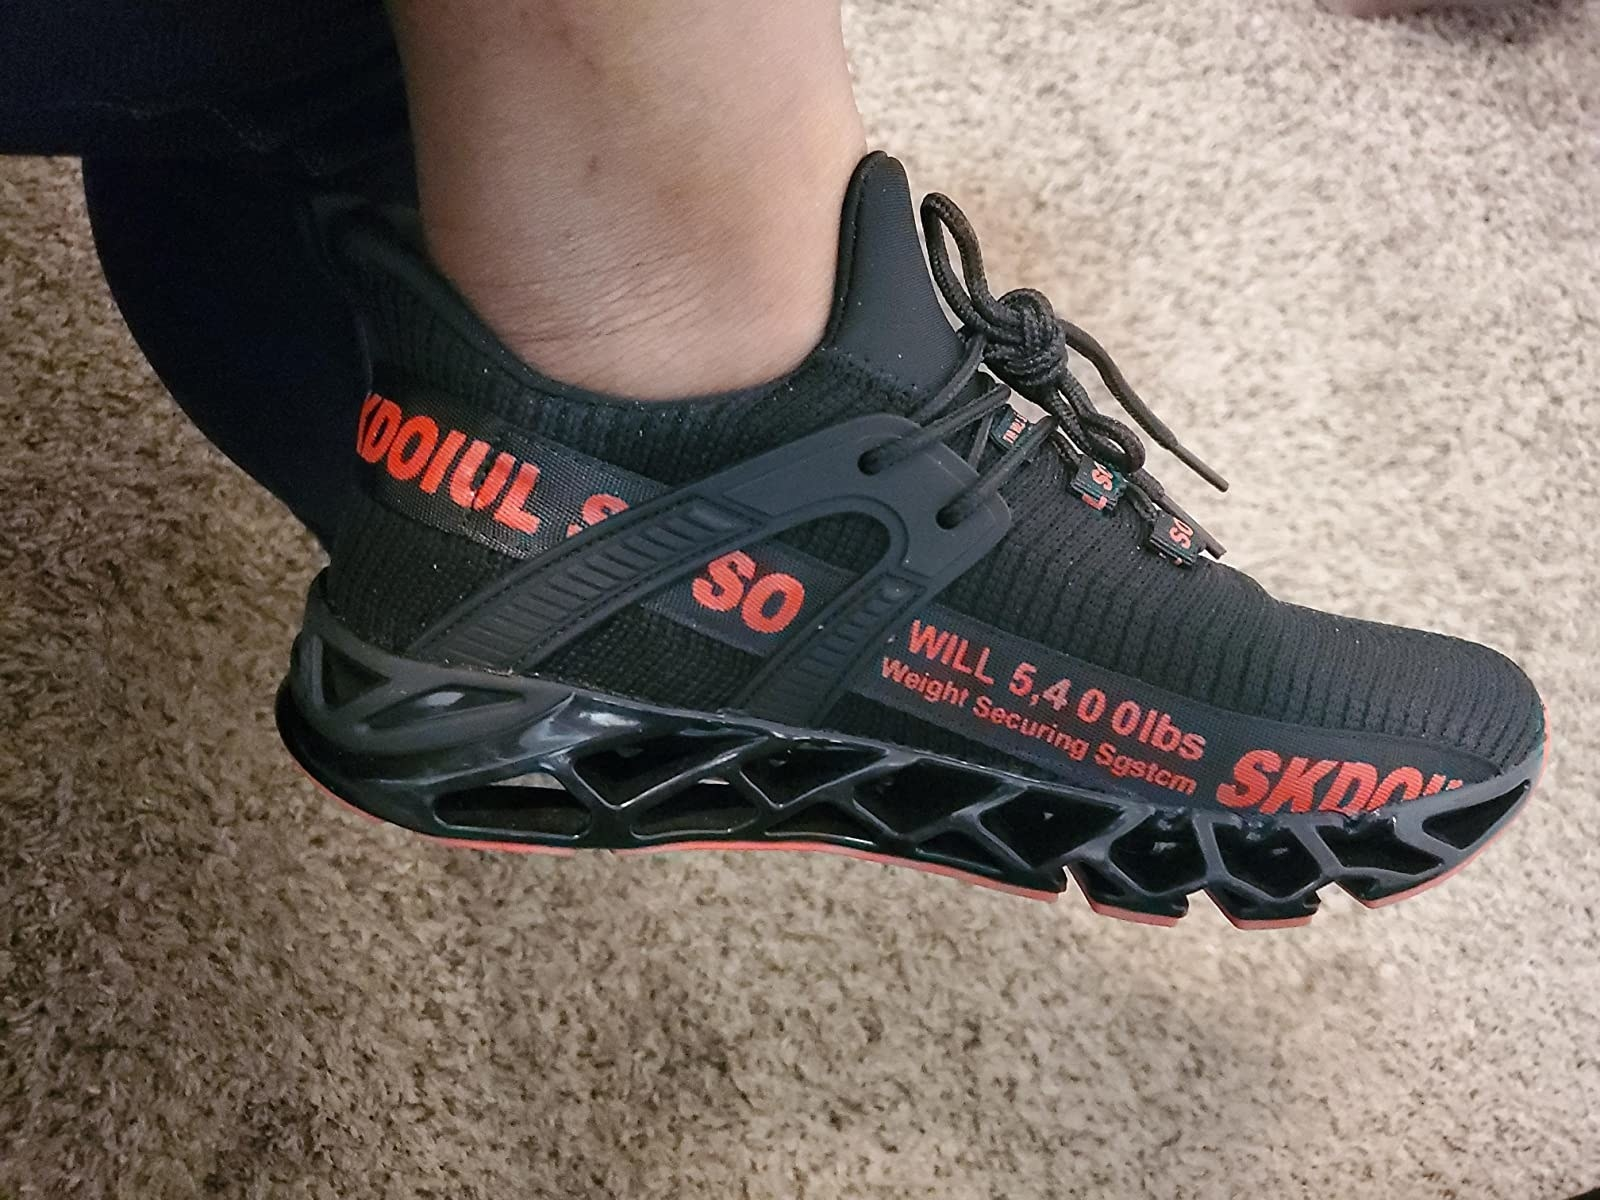 The black sneakers with red writing along the side, black reinforcements, and a partially open bottom